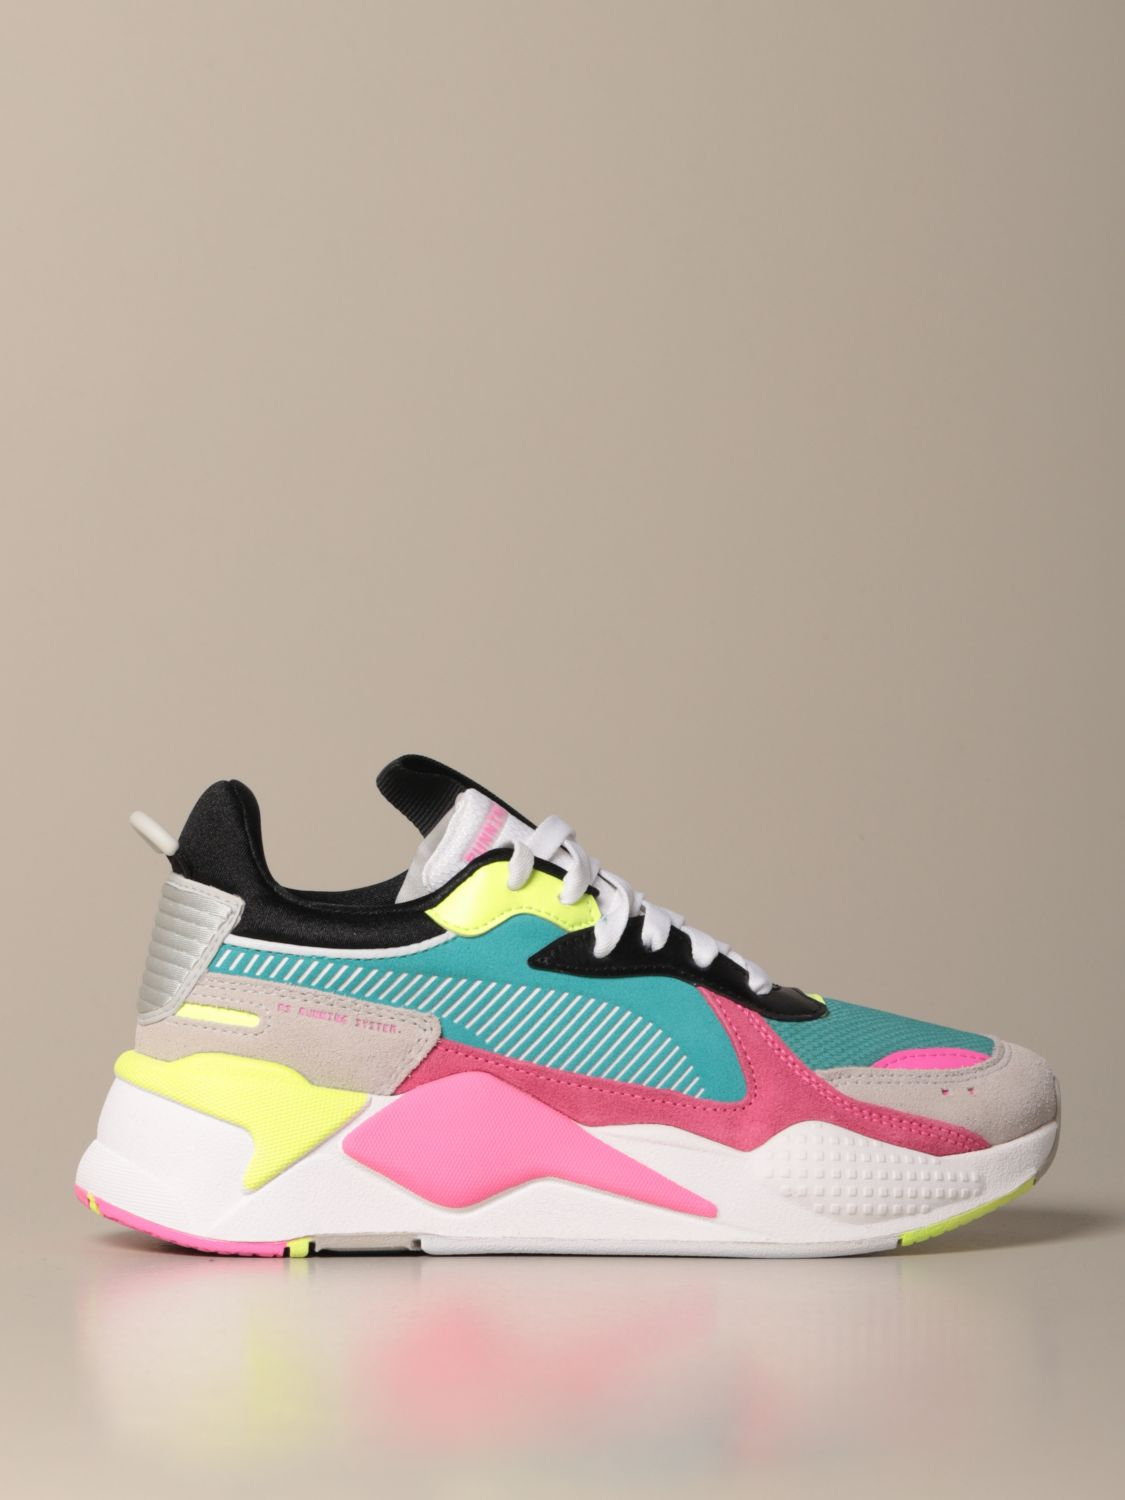 Rs-x reinvent Puma suede leather